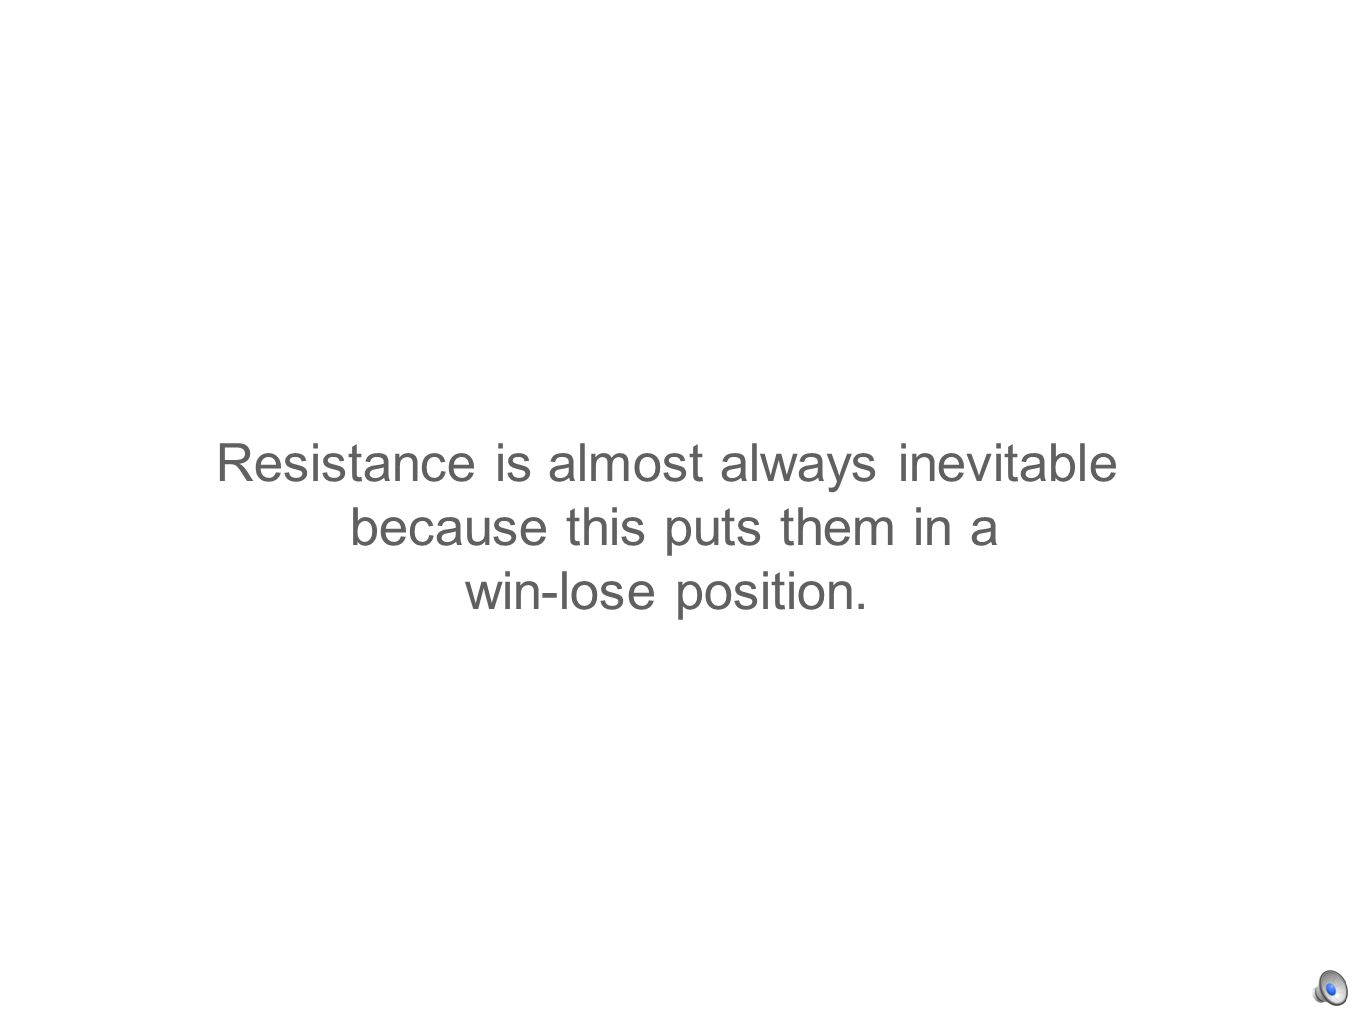 Resistance is almost always inevitable because this puts them in a win-lose position.